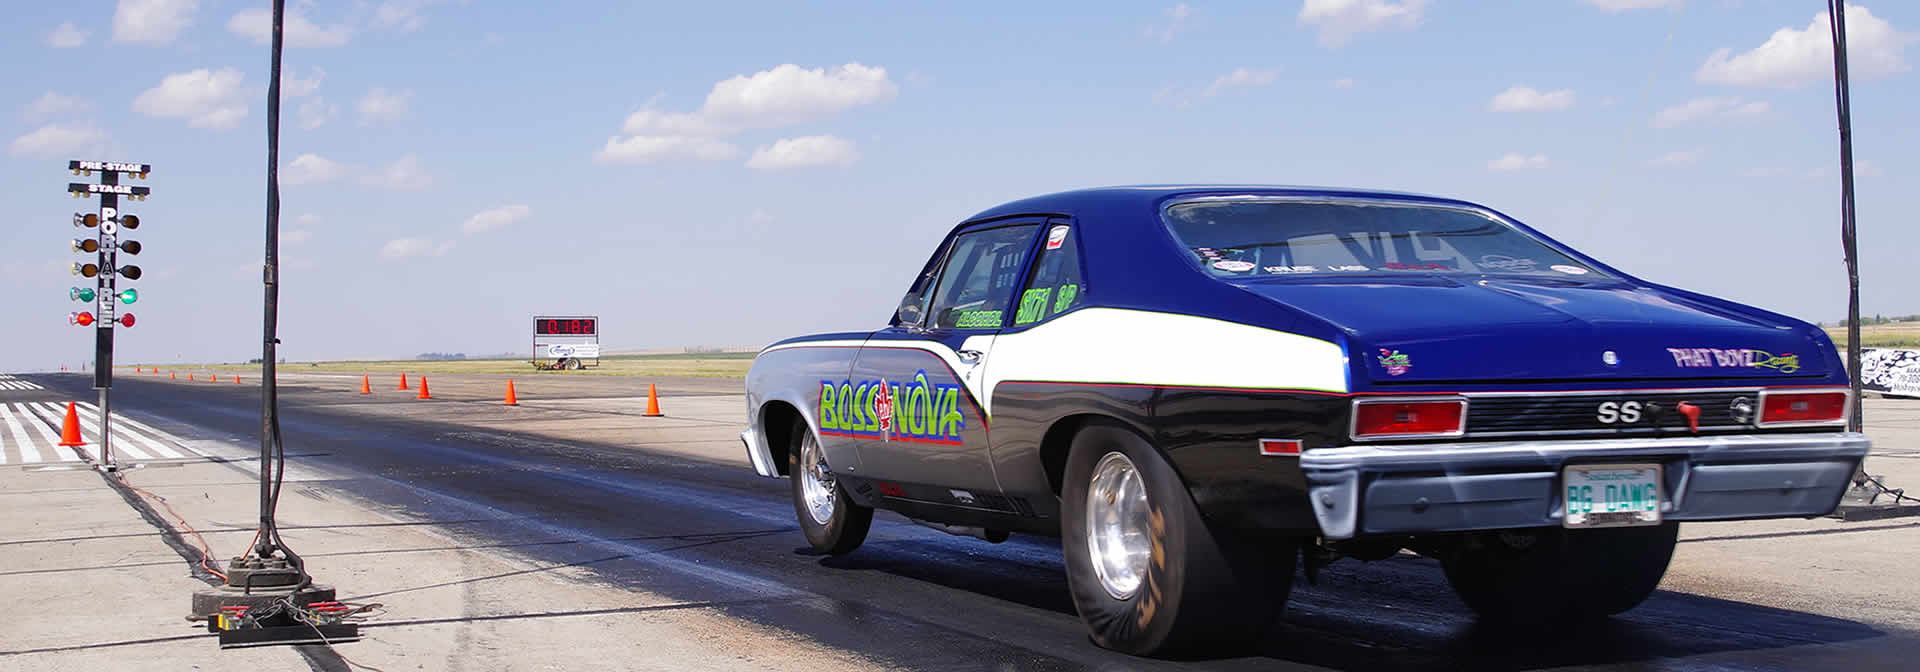 Drag Racing at the Swift Current Airport